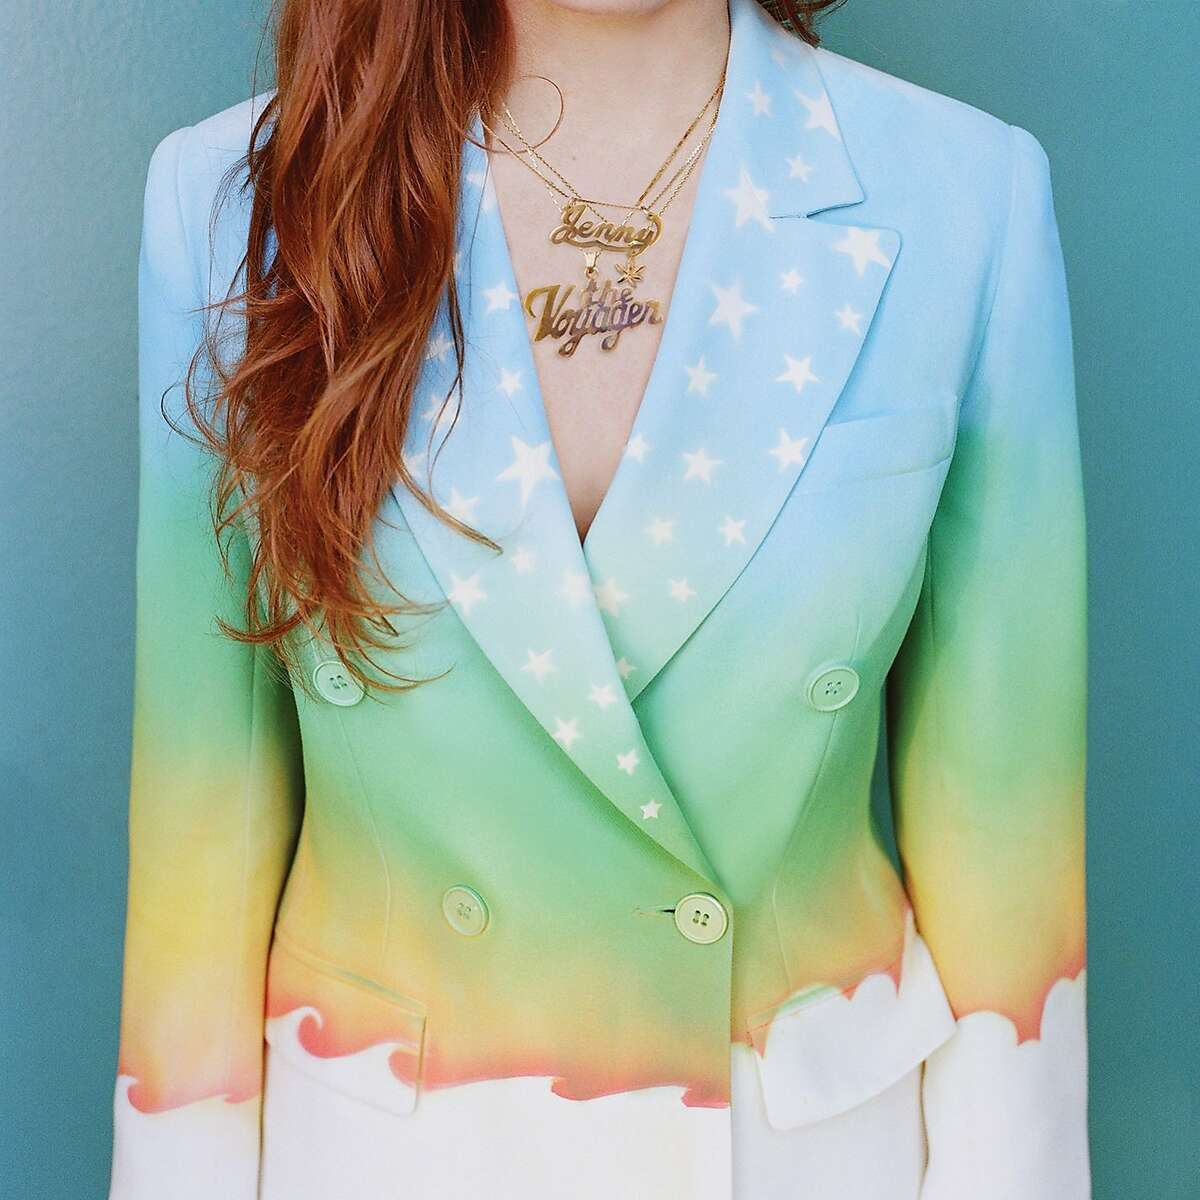 Jenny Lewis, 'The Voyager'